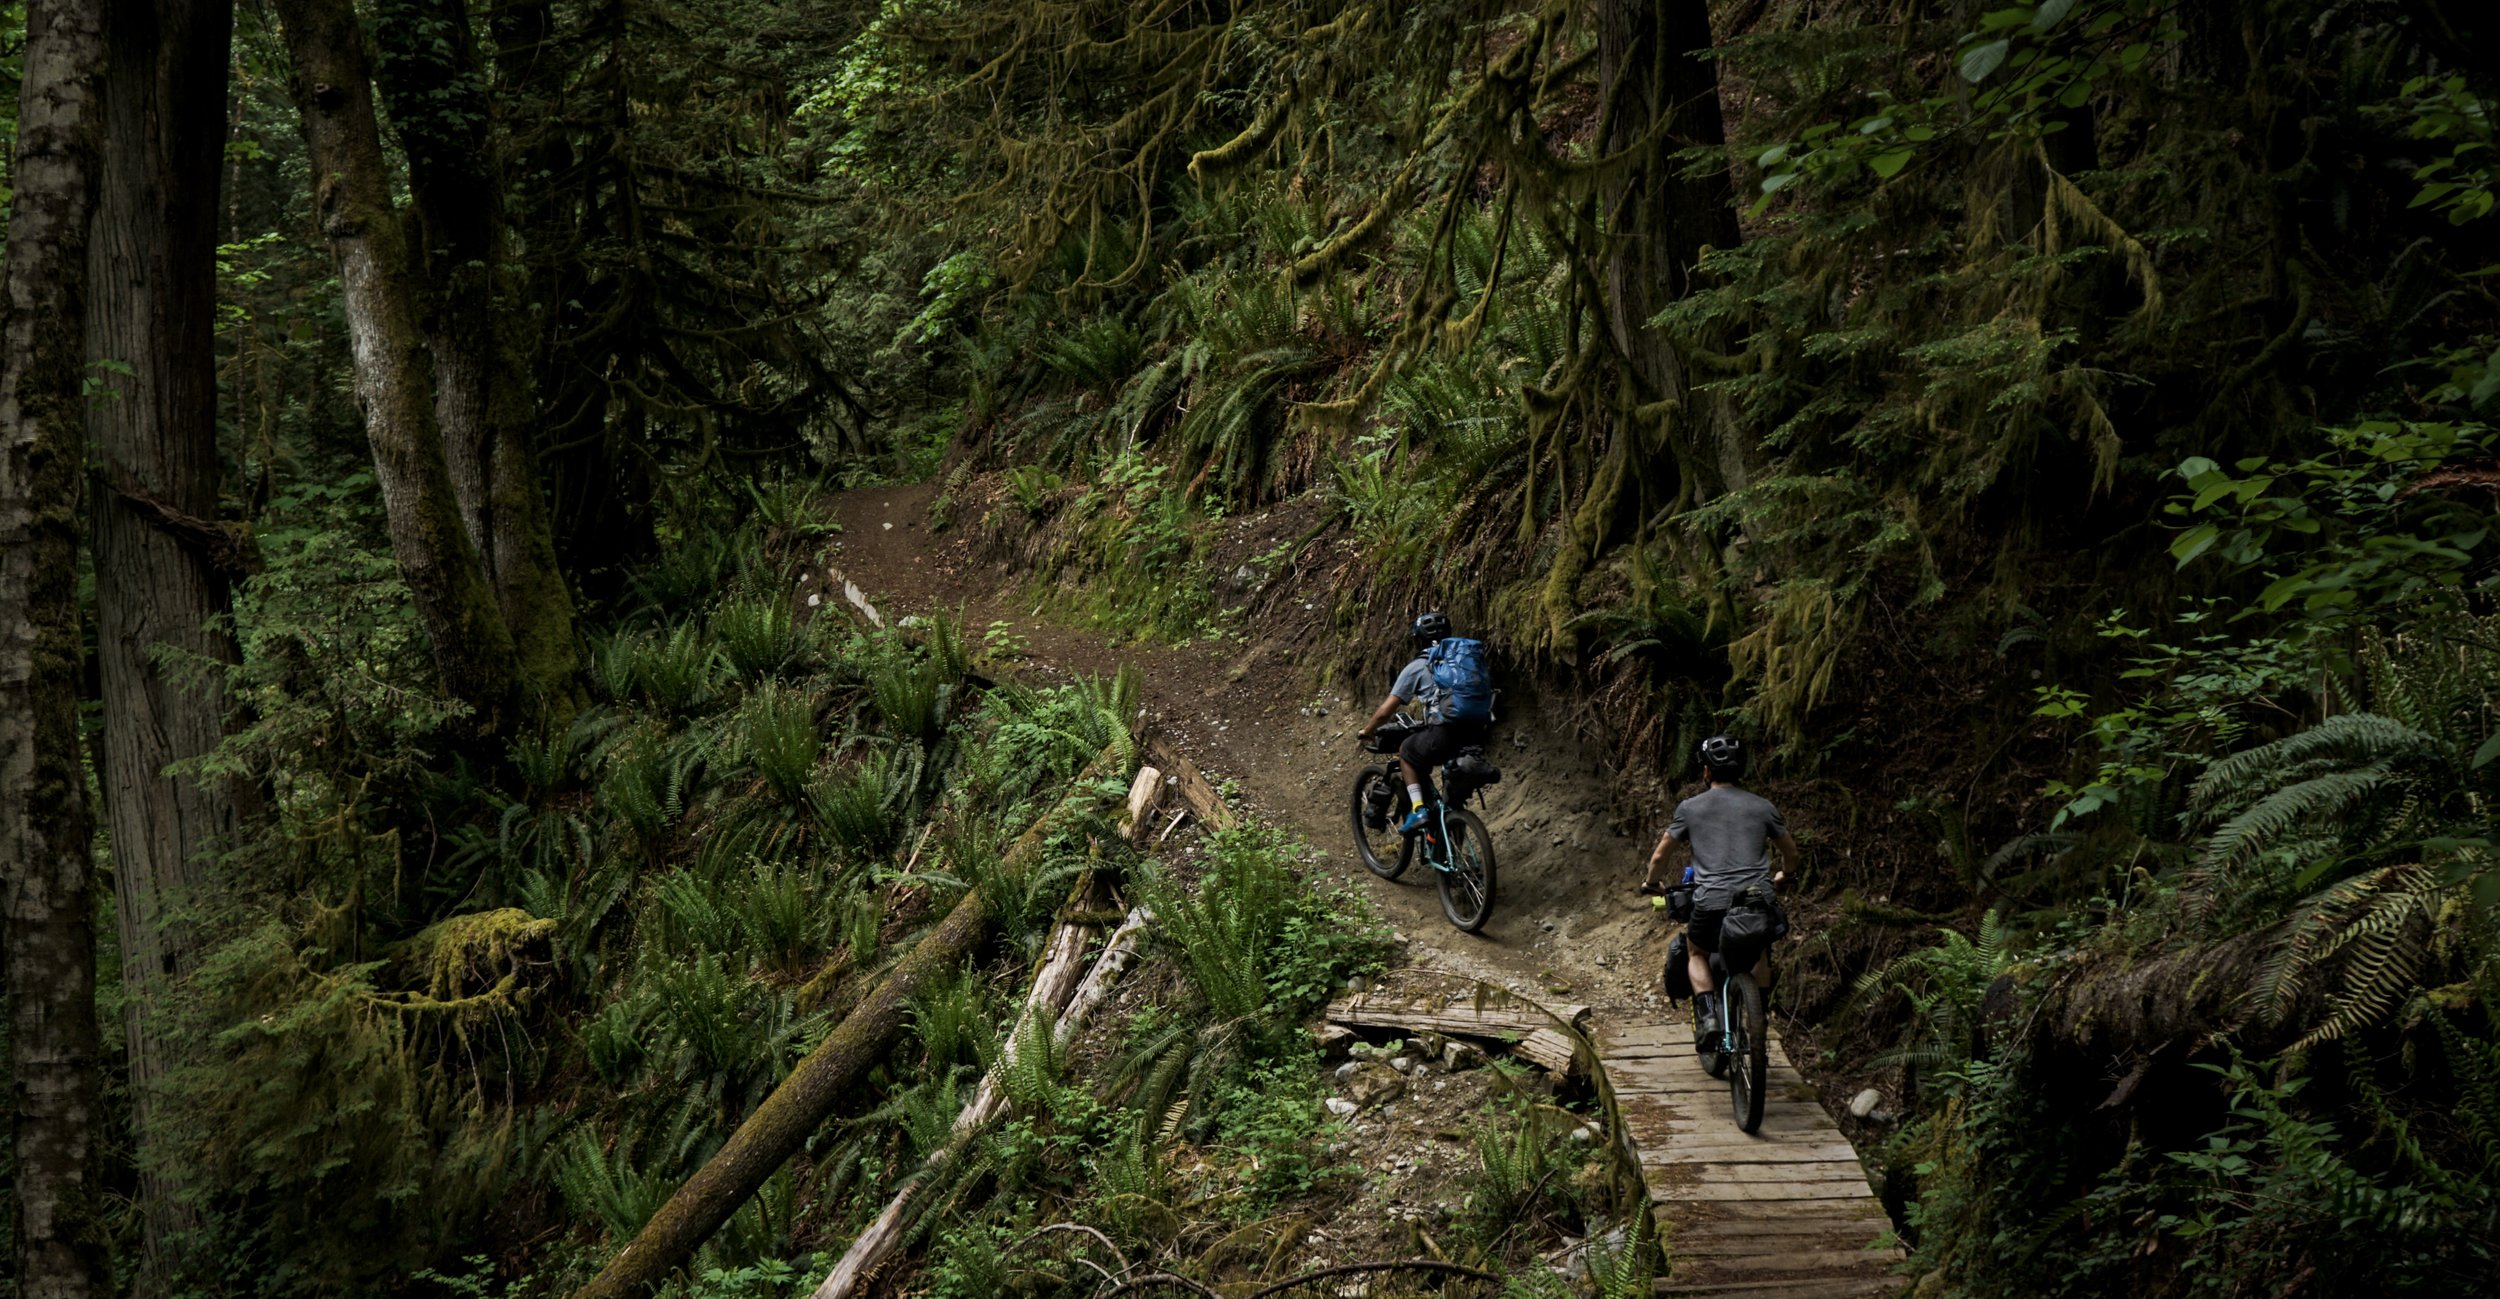 ICESEND: Sunshine Coast Trail - Bike Packing from Vancouver